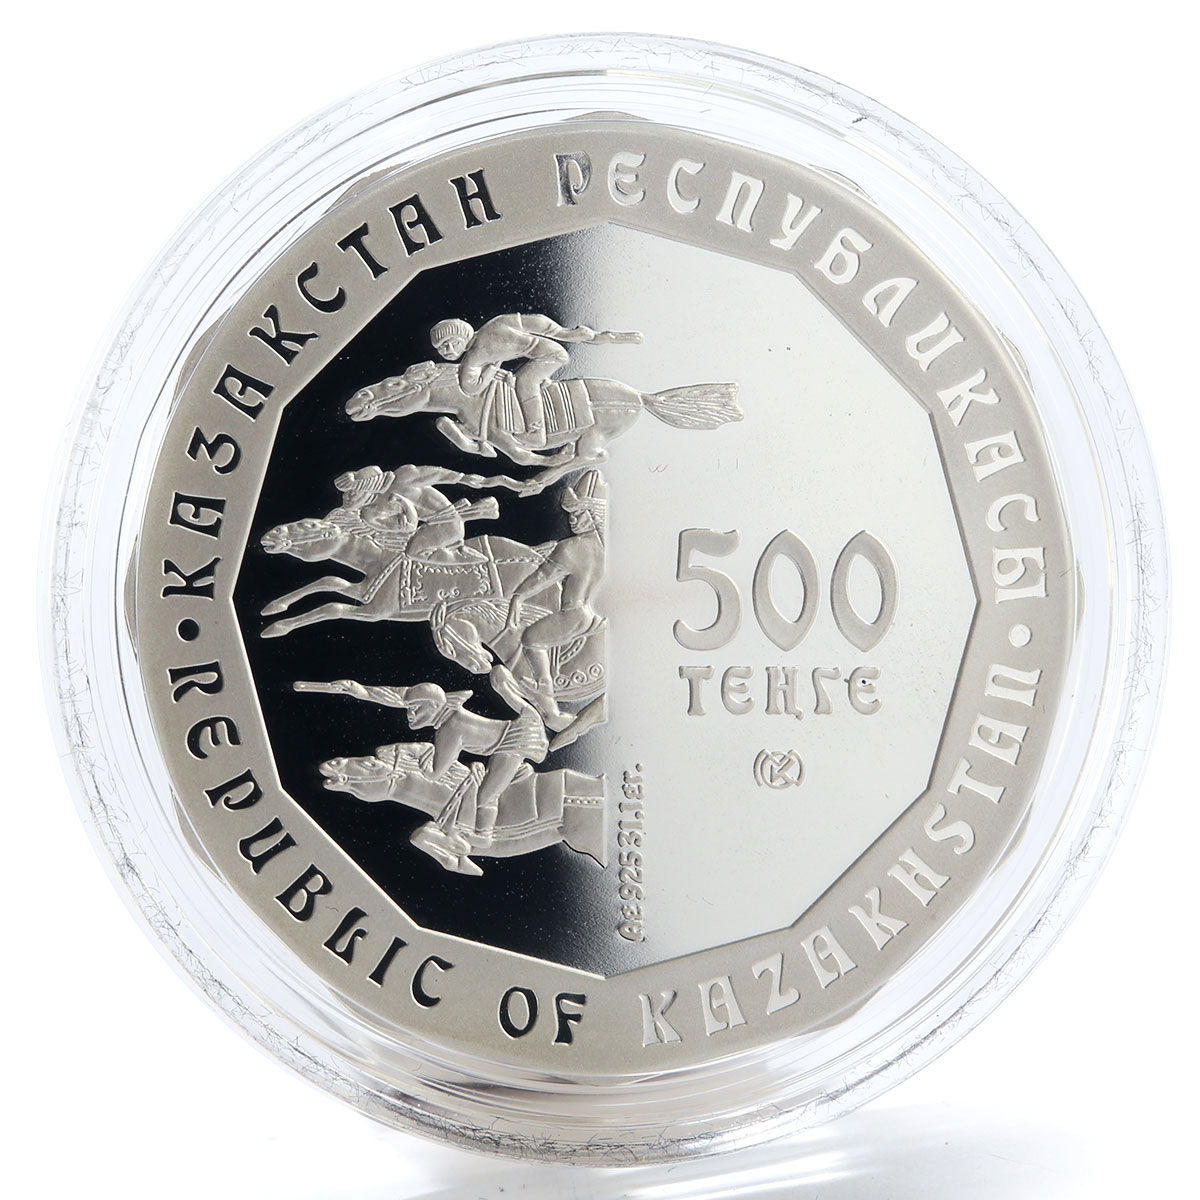 Kazakhstan 500 tenge Fragment of a Diadem proof gilded silver coin 2008